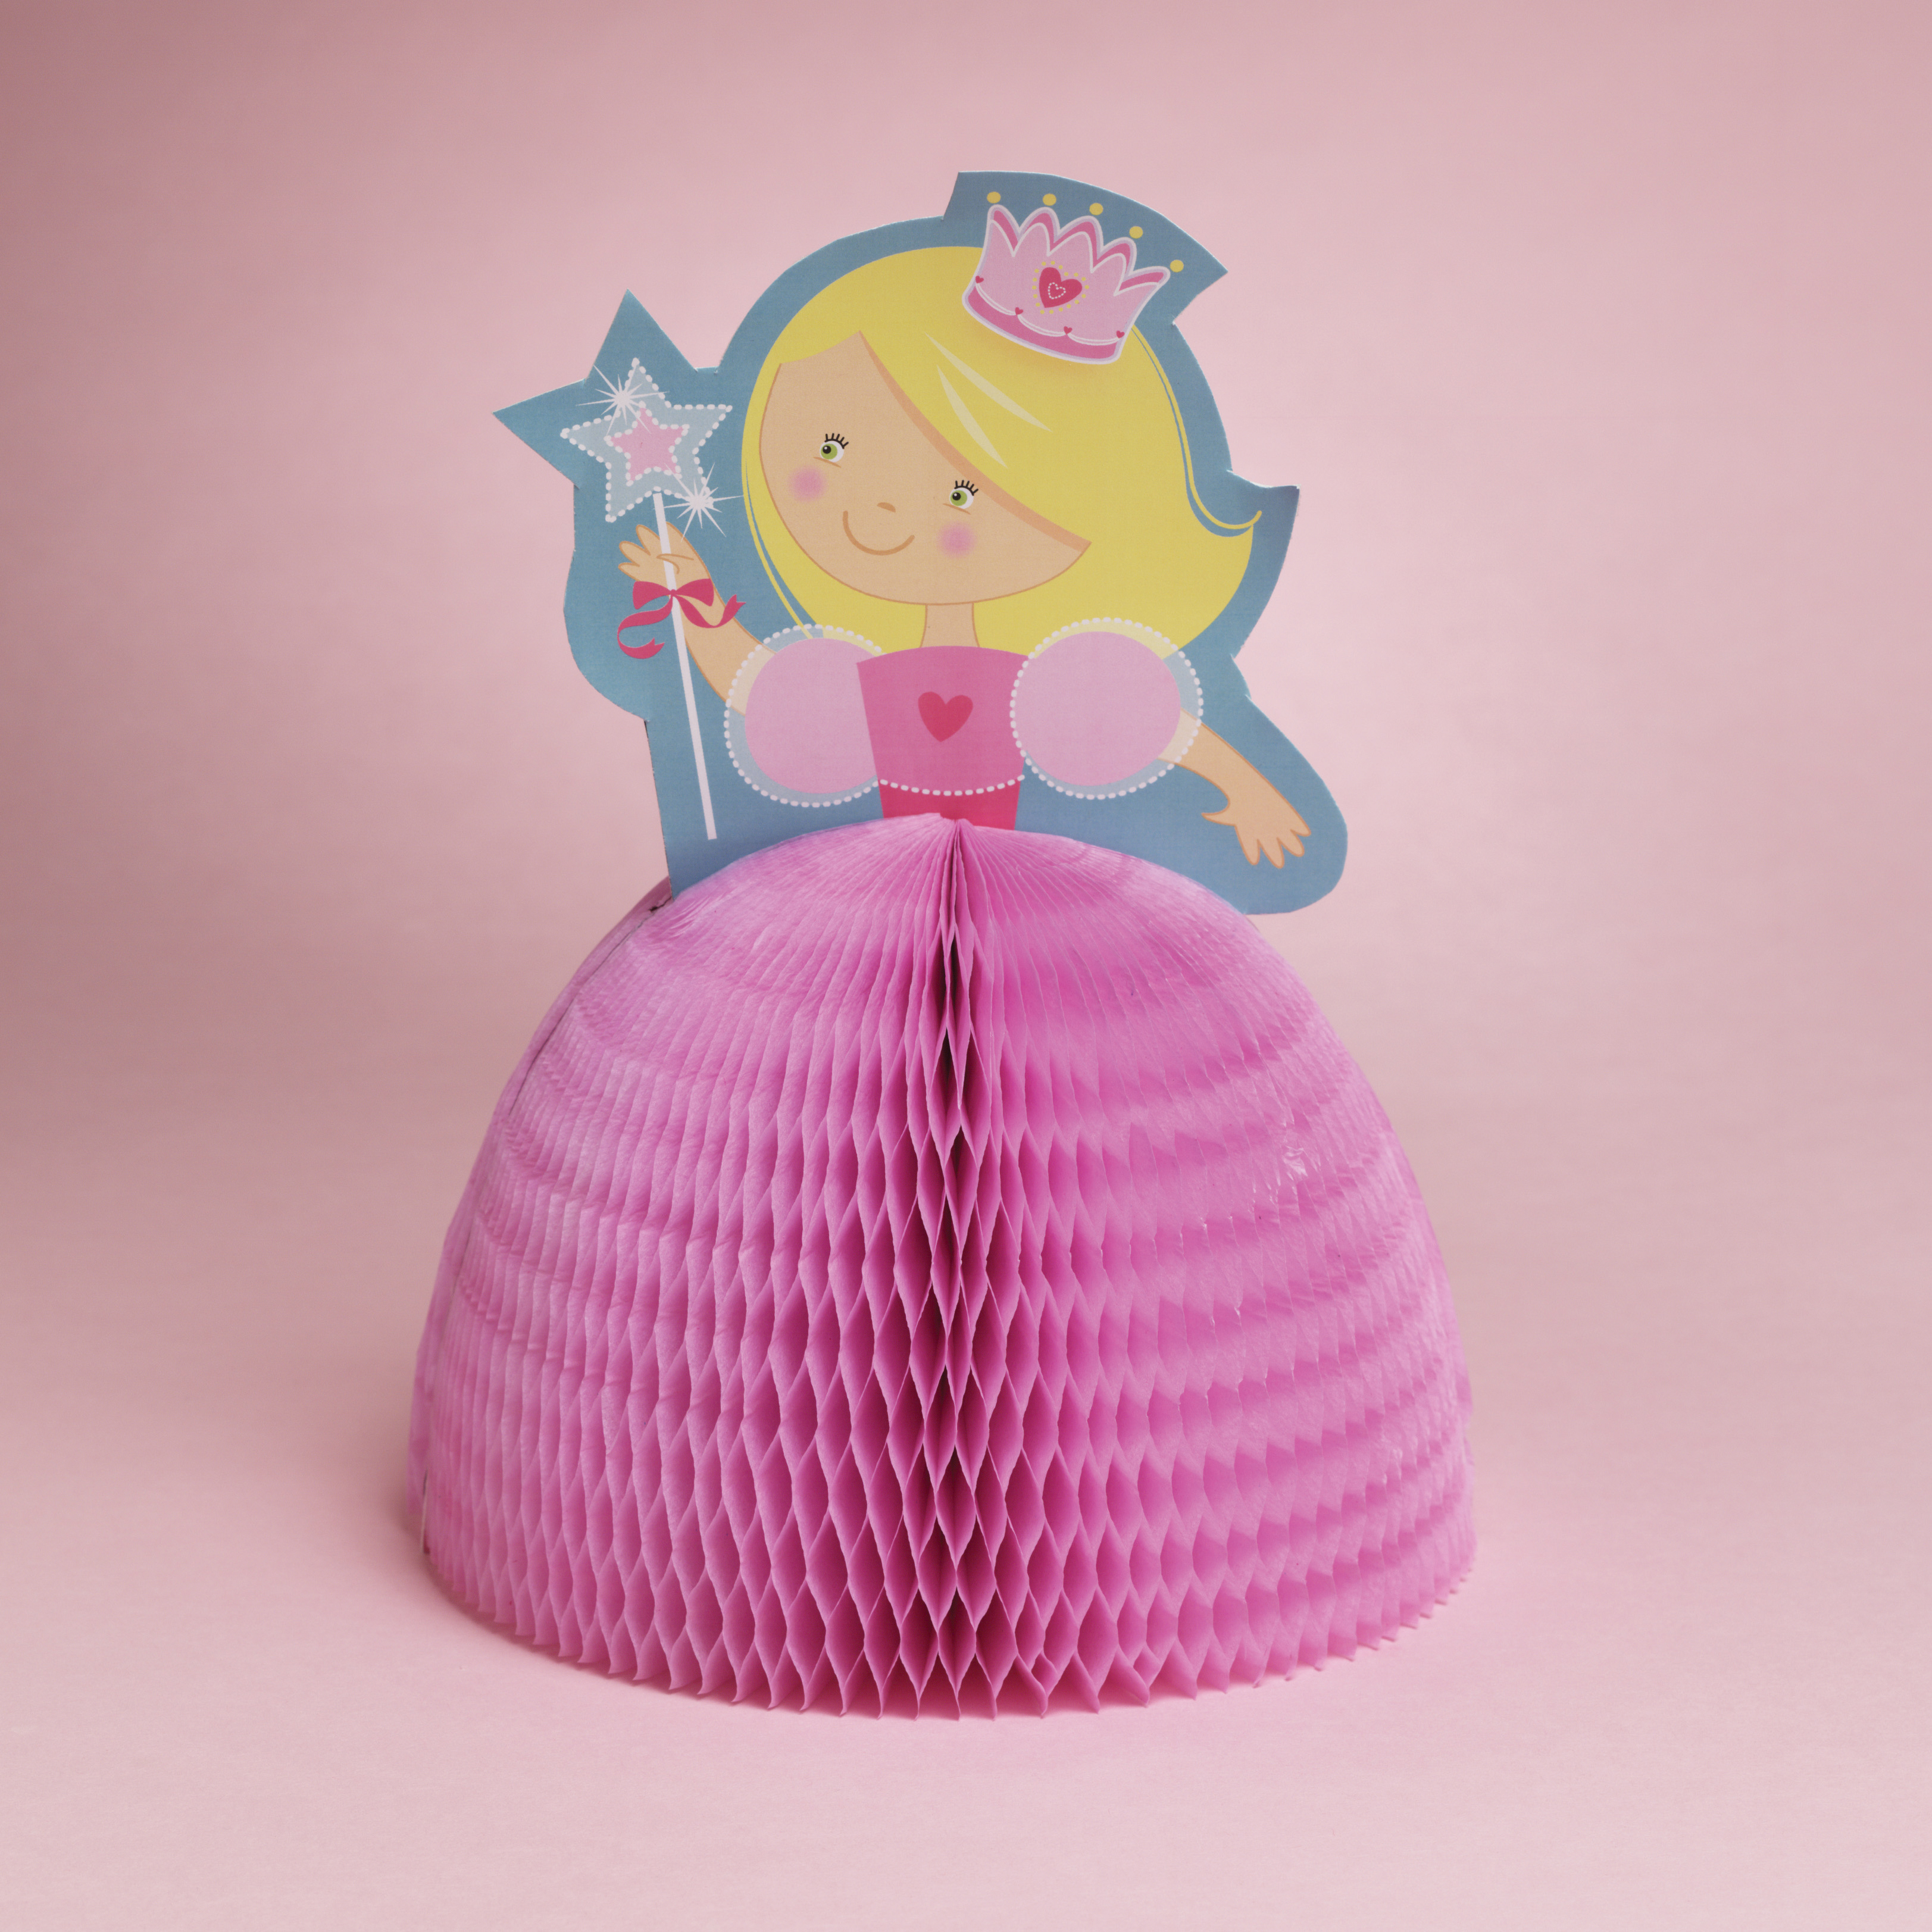 Fairytale Princess Honeycomb Centerpiece